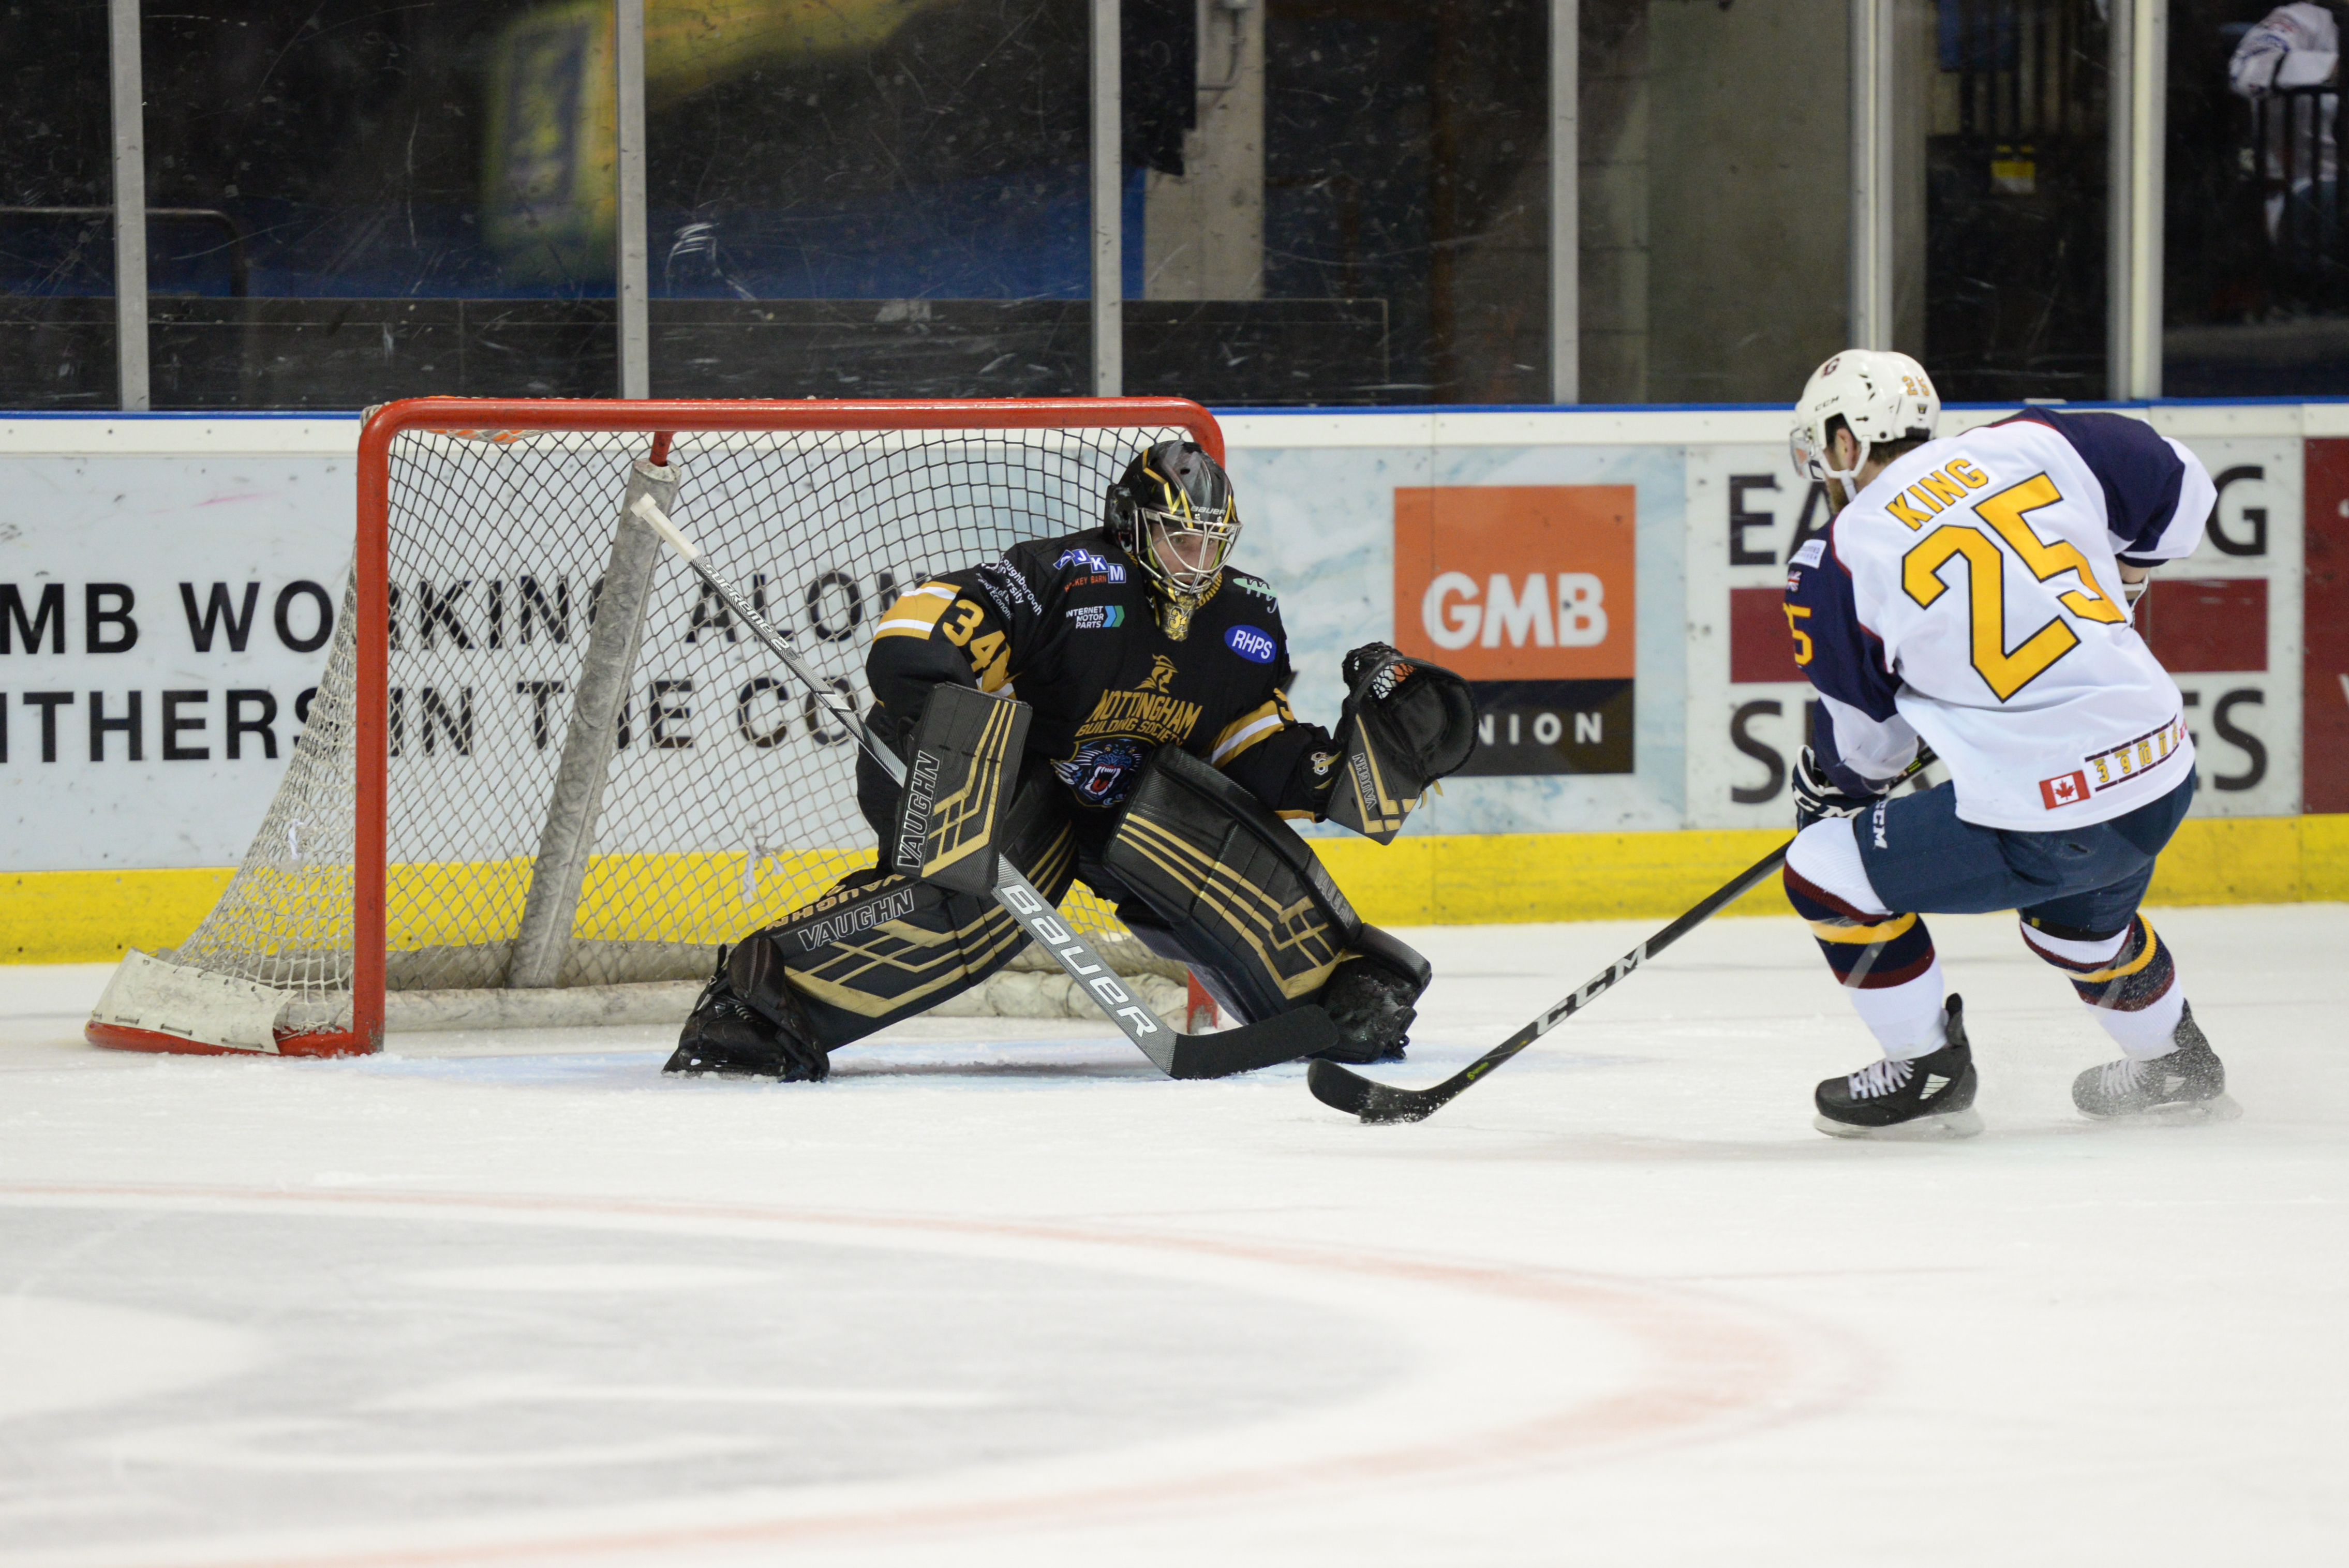 Highlights: Panthers vs Flames - 14/02/19 Top Image